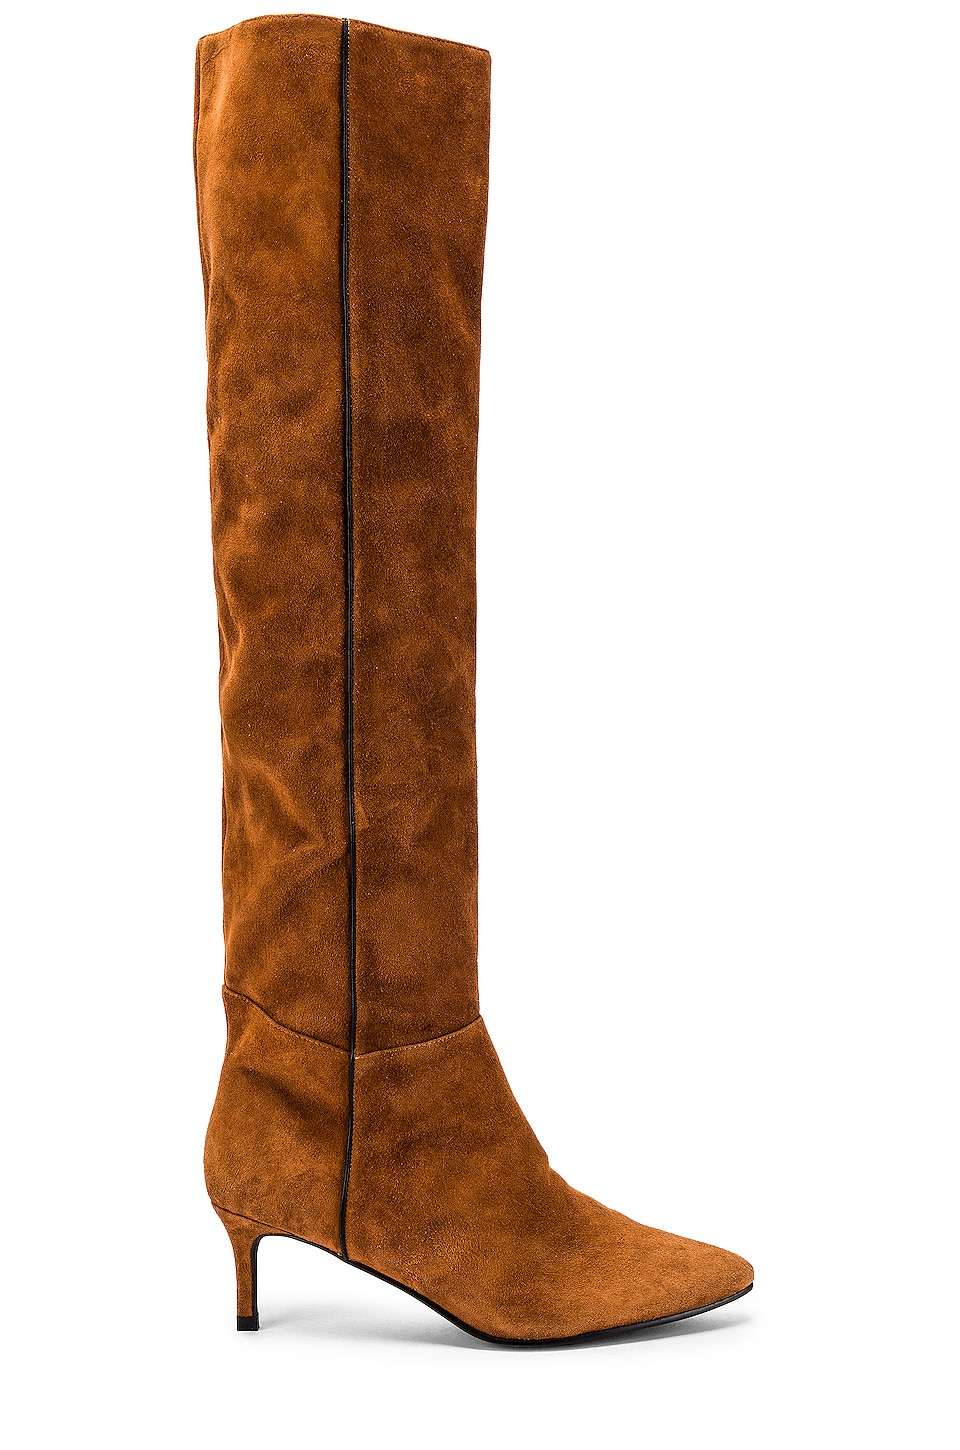 Caverley Jazzy Boot in Chestnut Suede